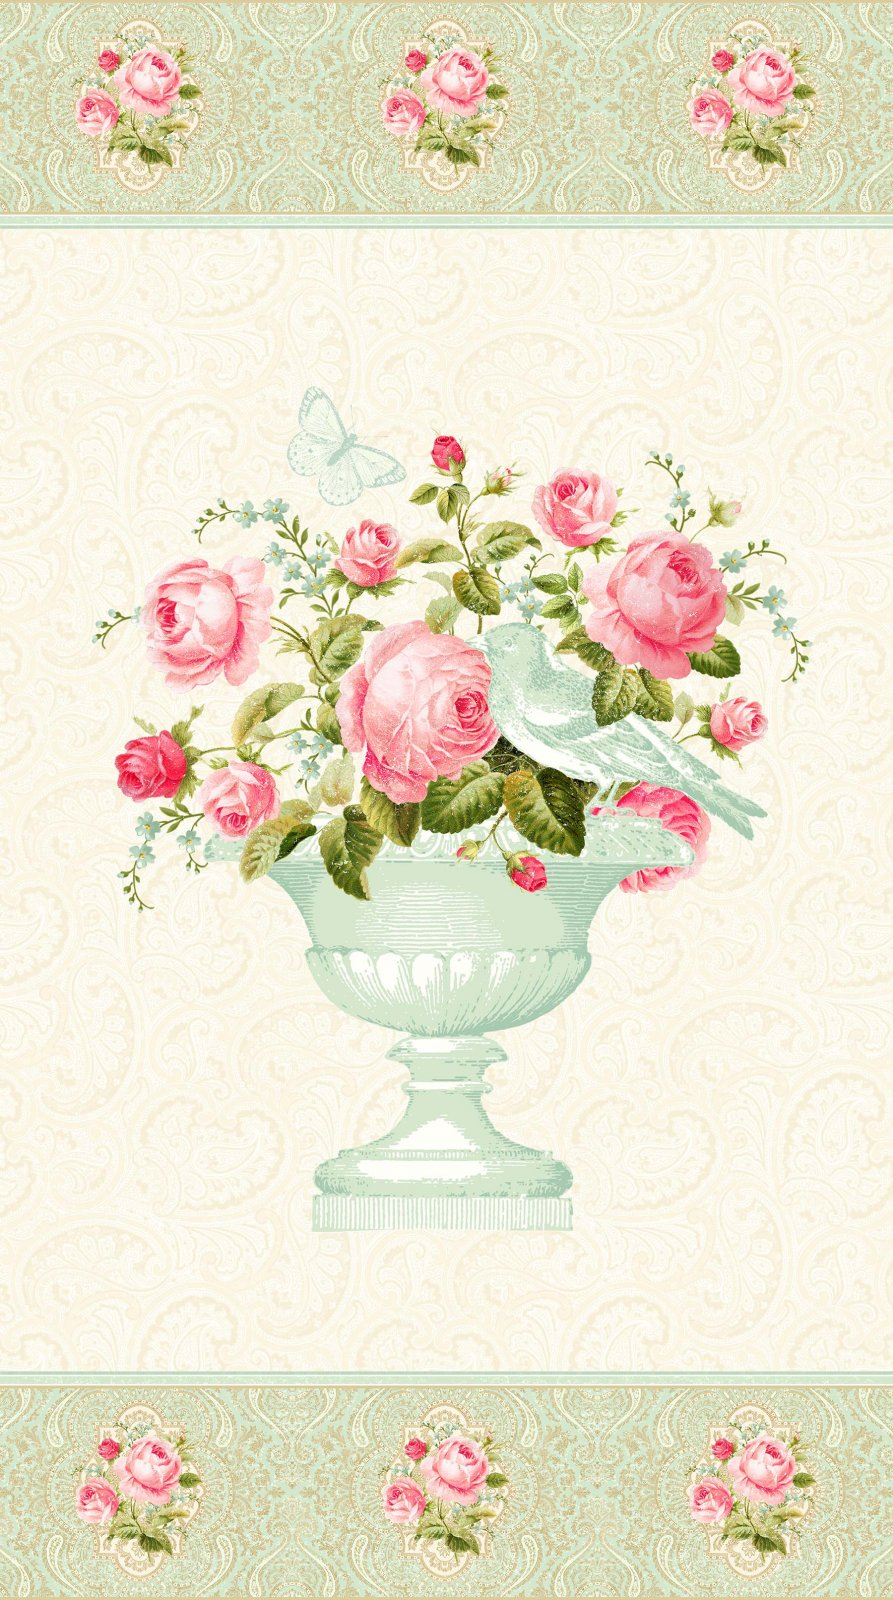 Hopelessly Romantic Rose Vase Panel